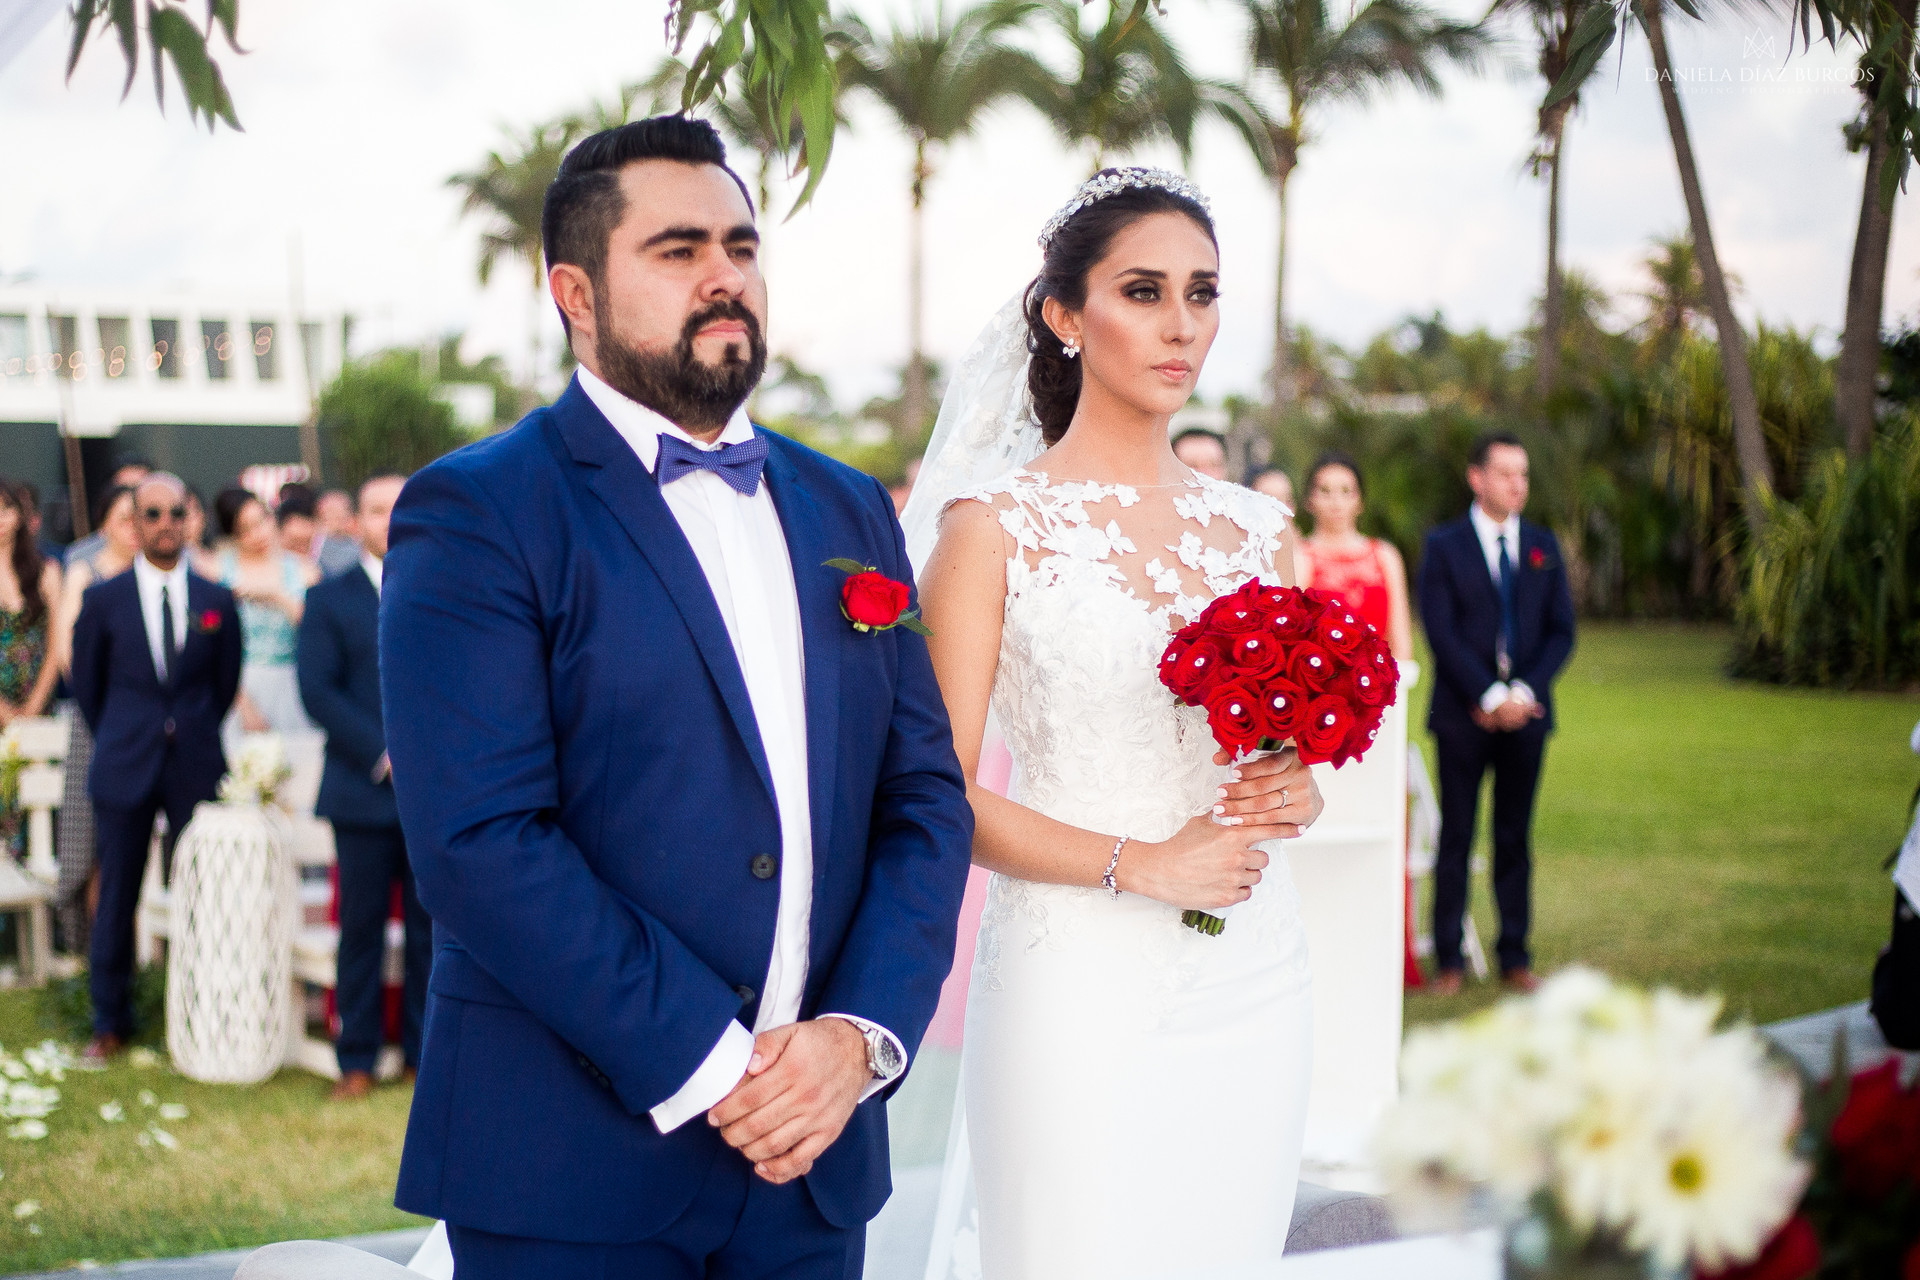 Zuza+Sergio-Wedding-LD-167.jpg